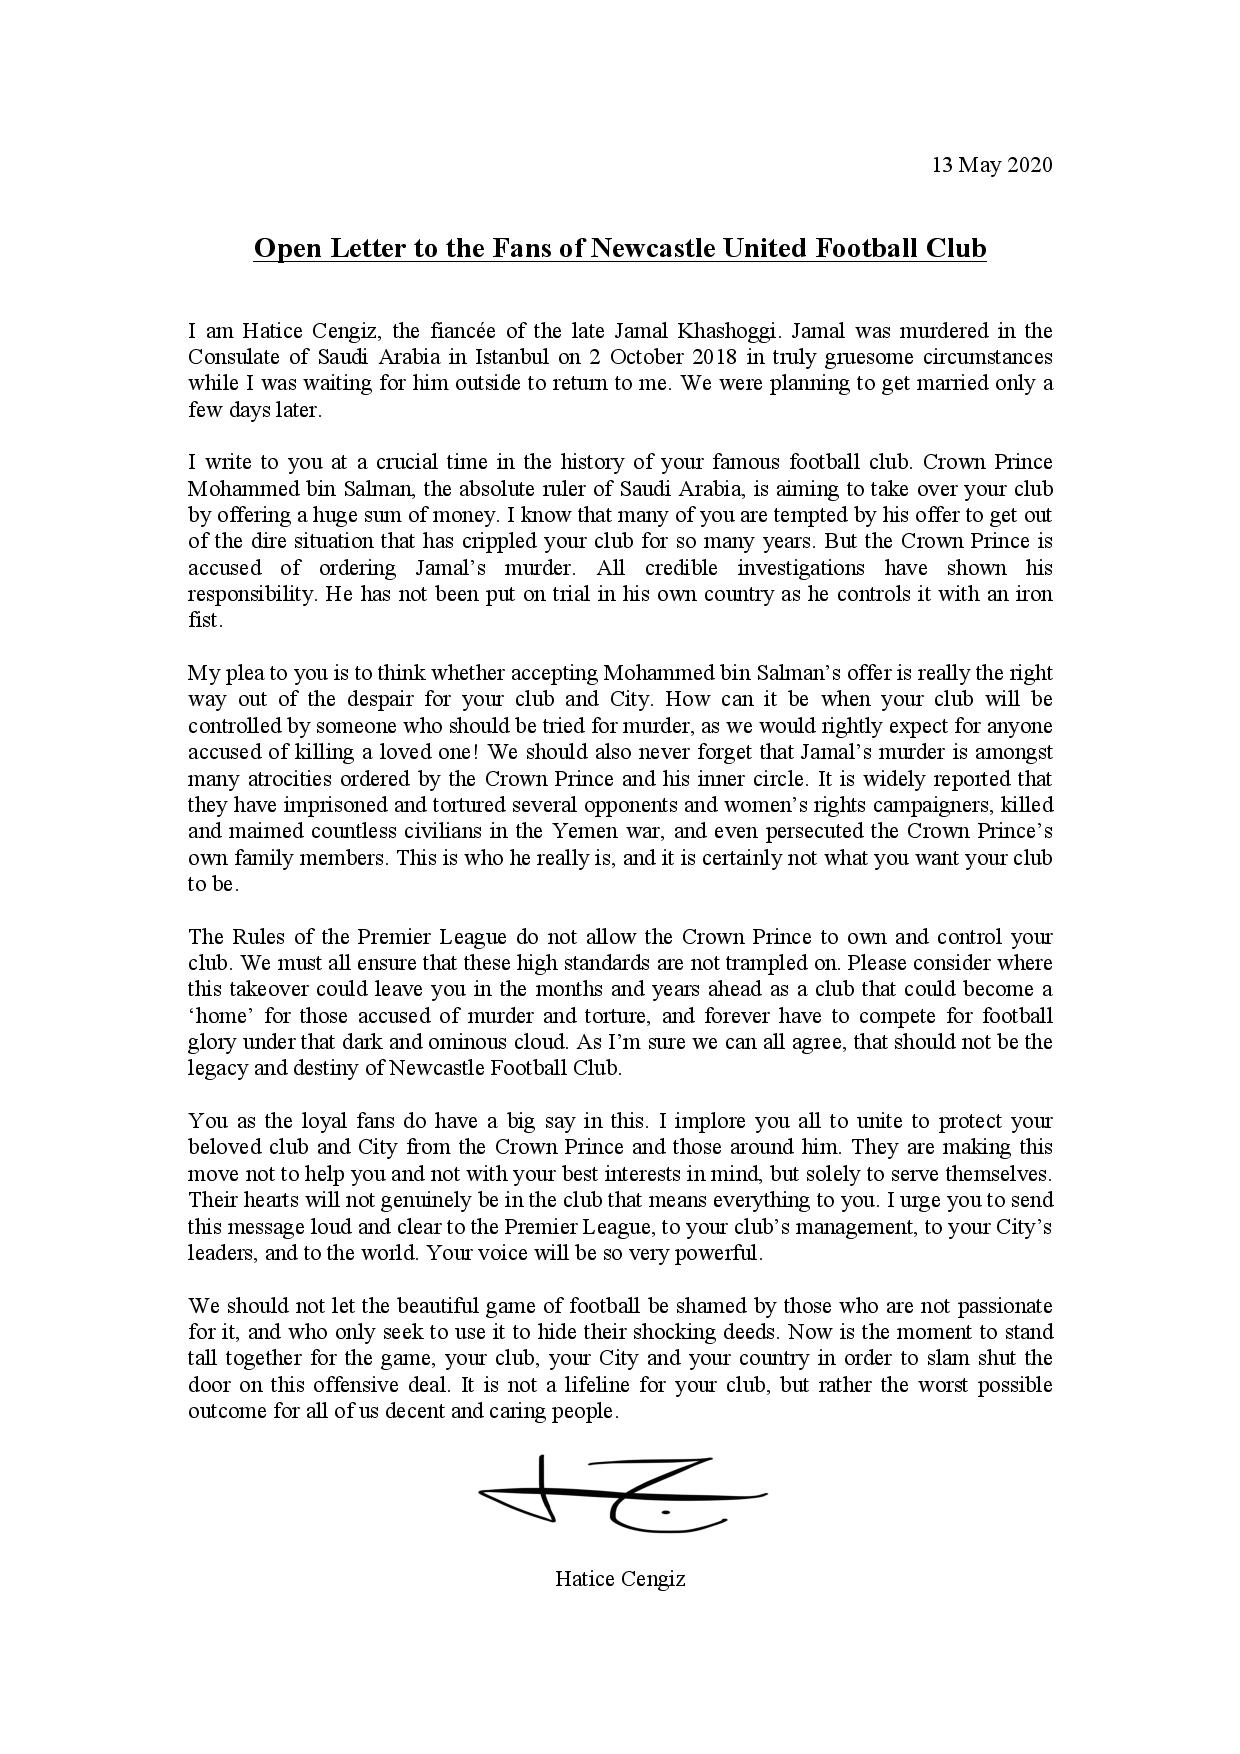 Open letter from Hatice Cengiz to Newcastle United fans